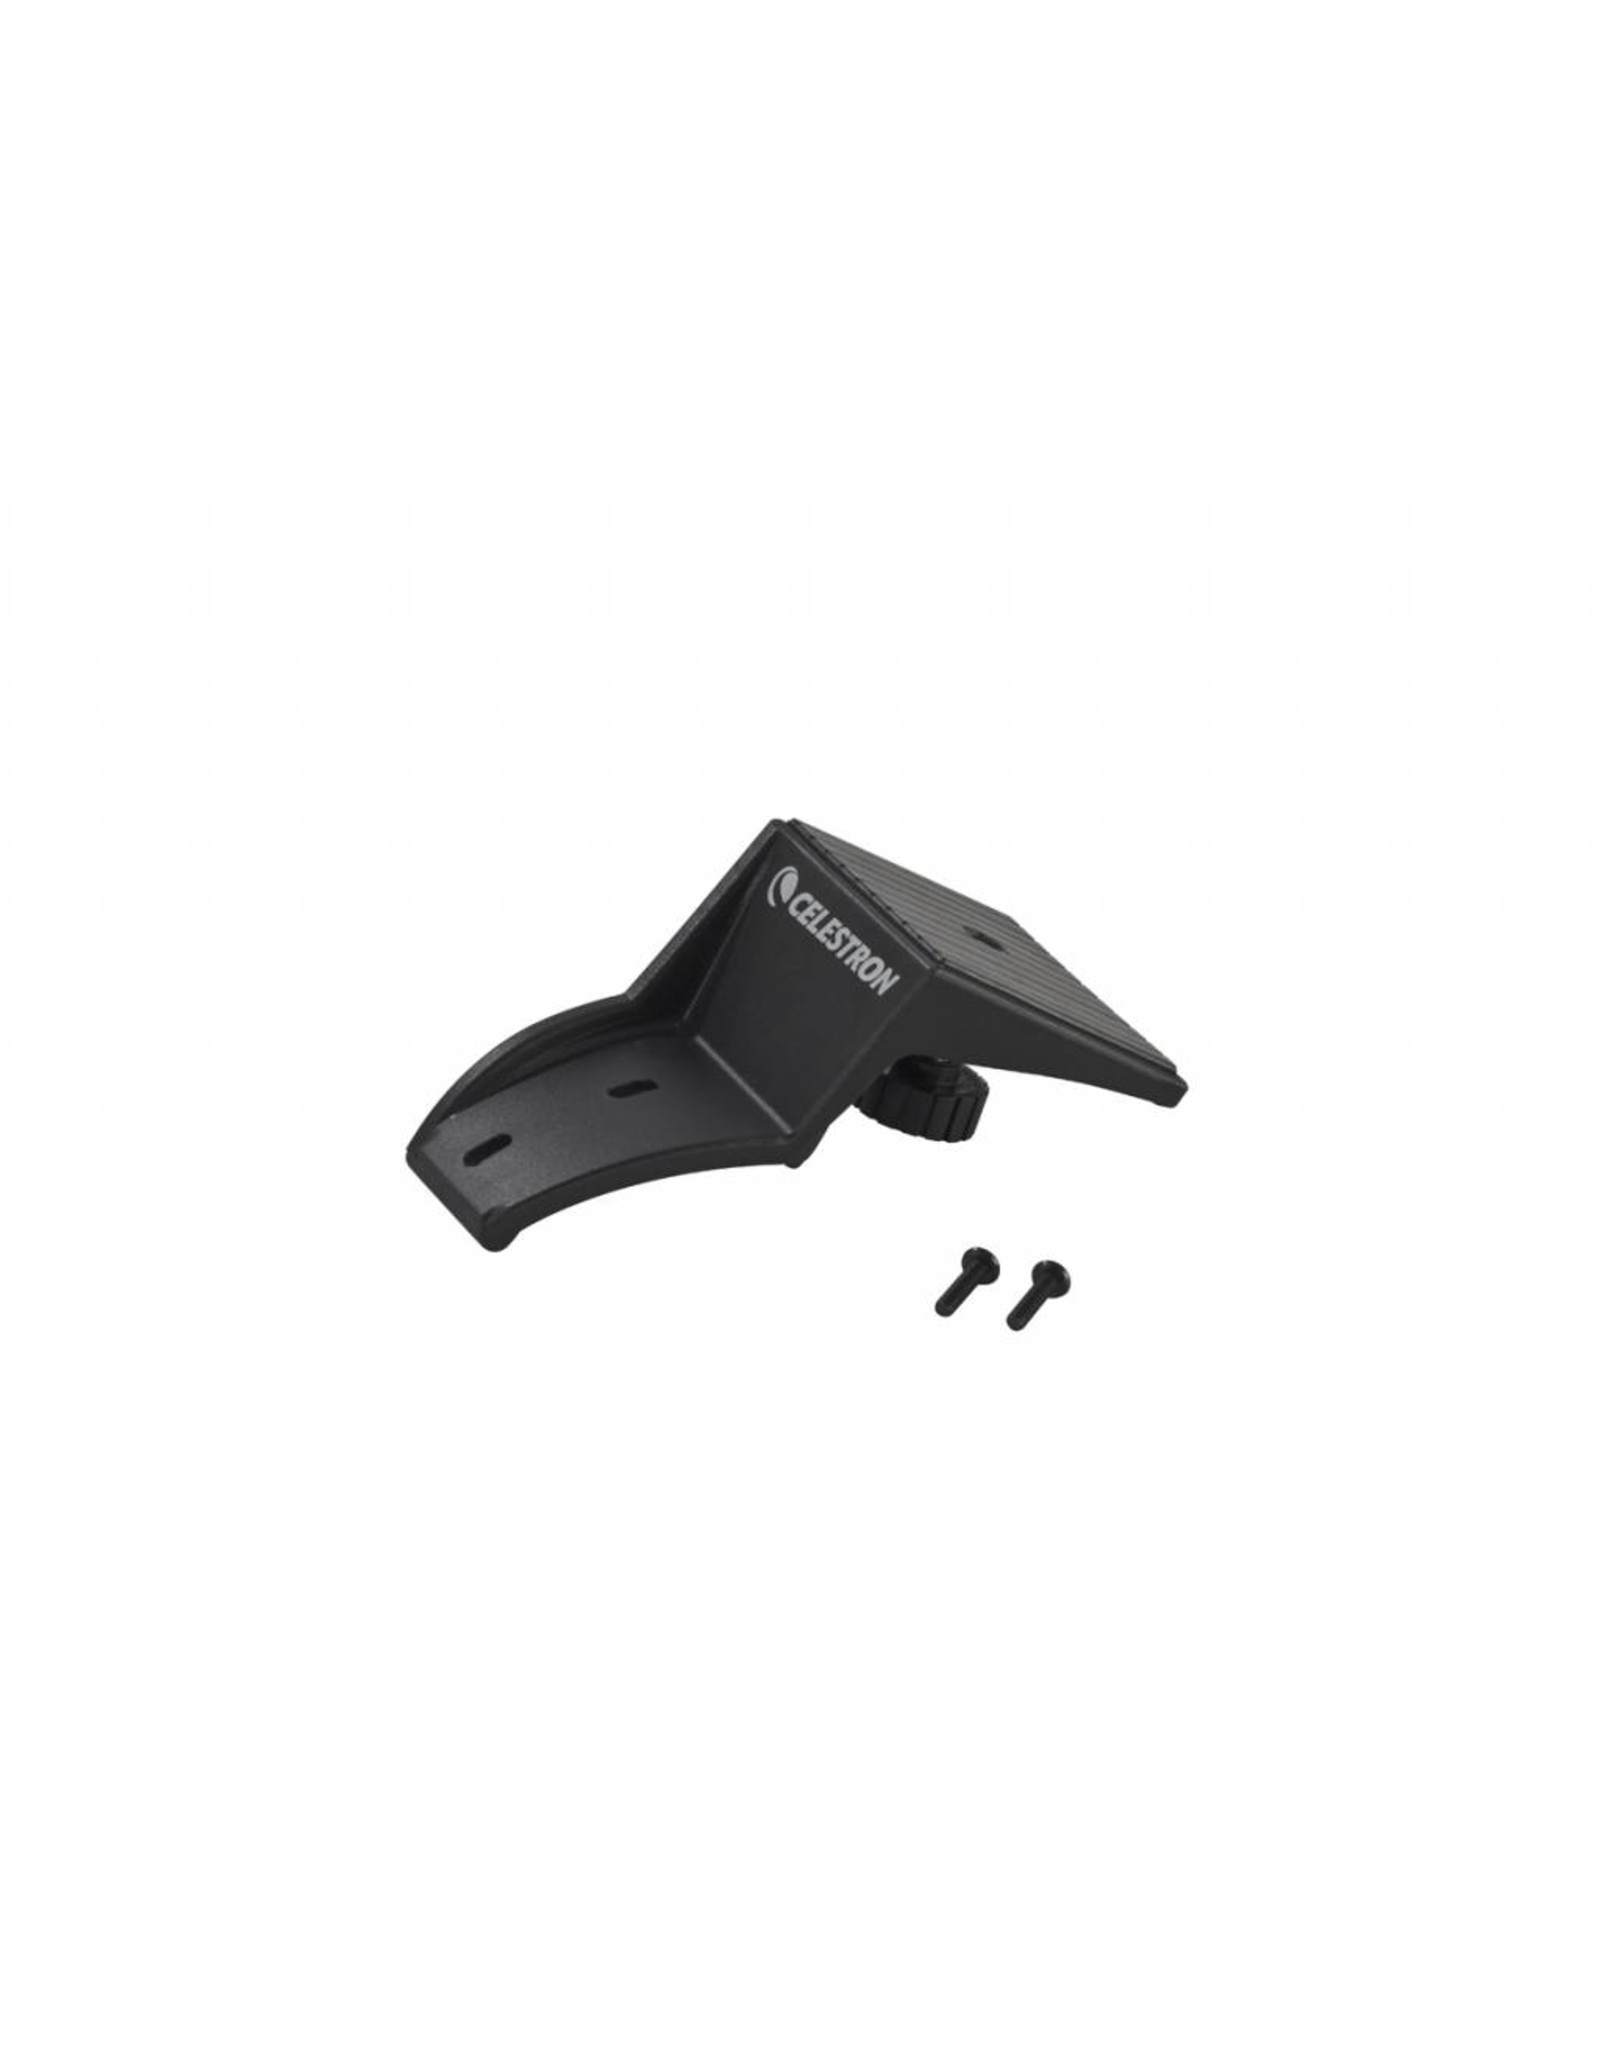 Celestron Celestron Piggyback Mount - for Nexstar 5, 6, and 8